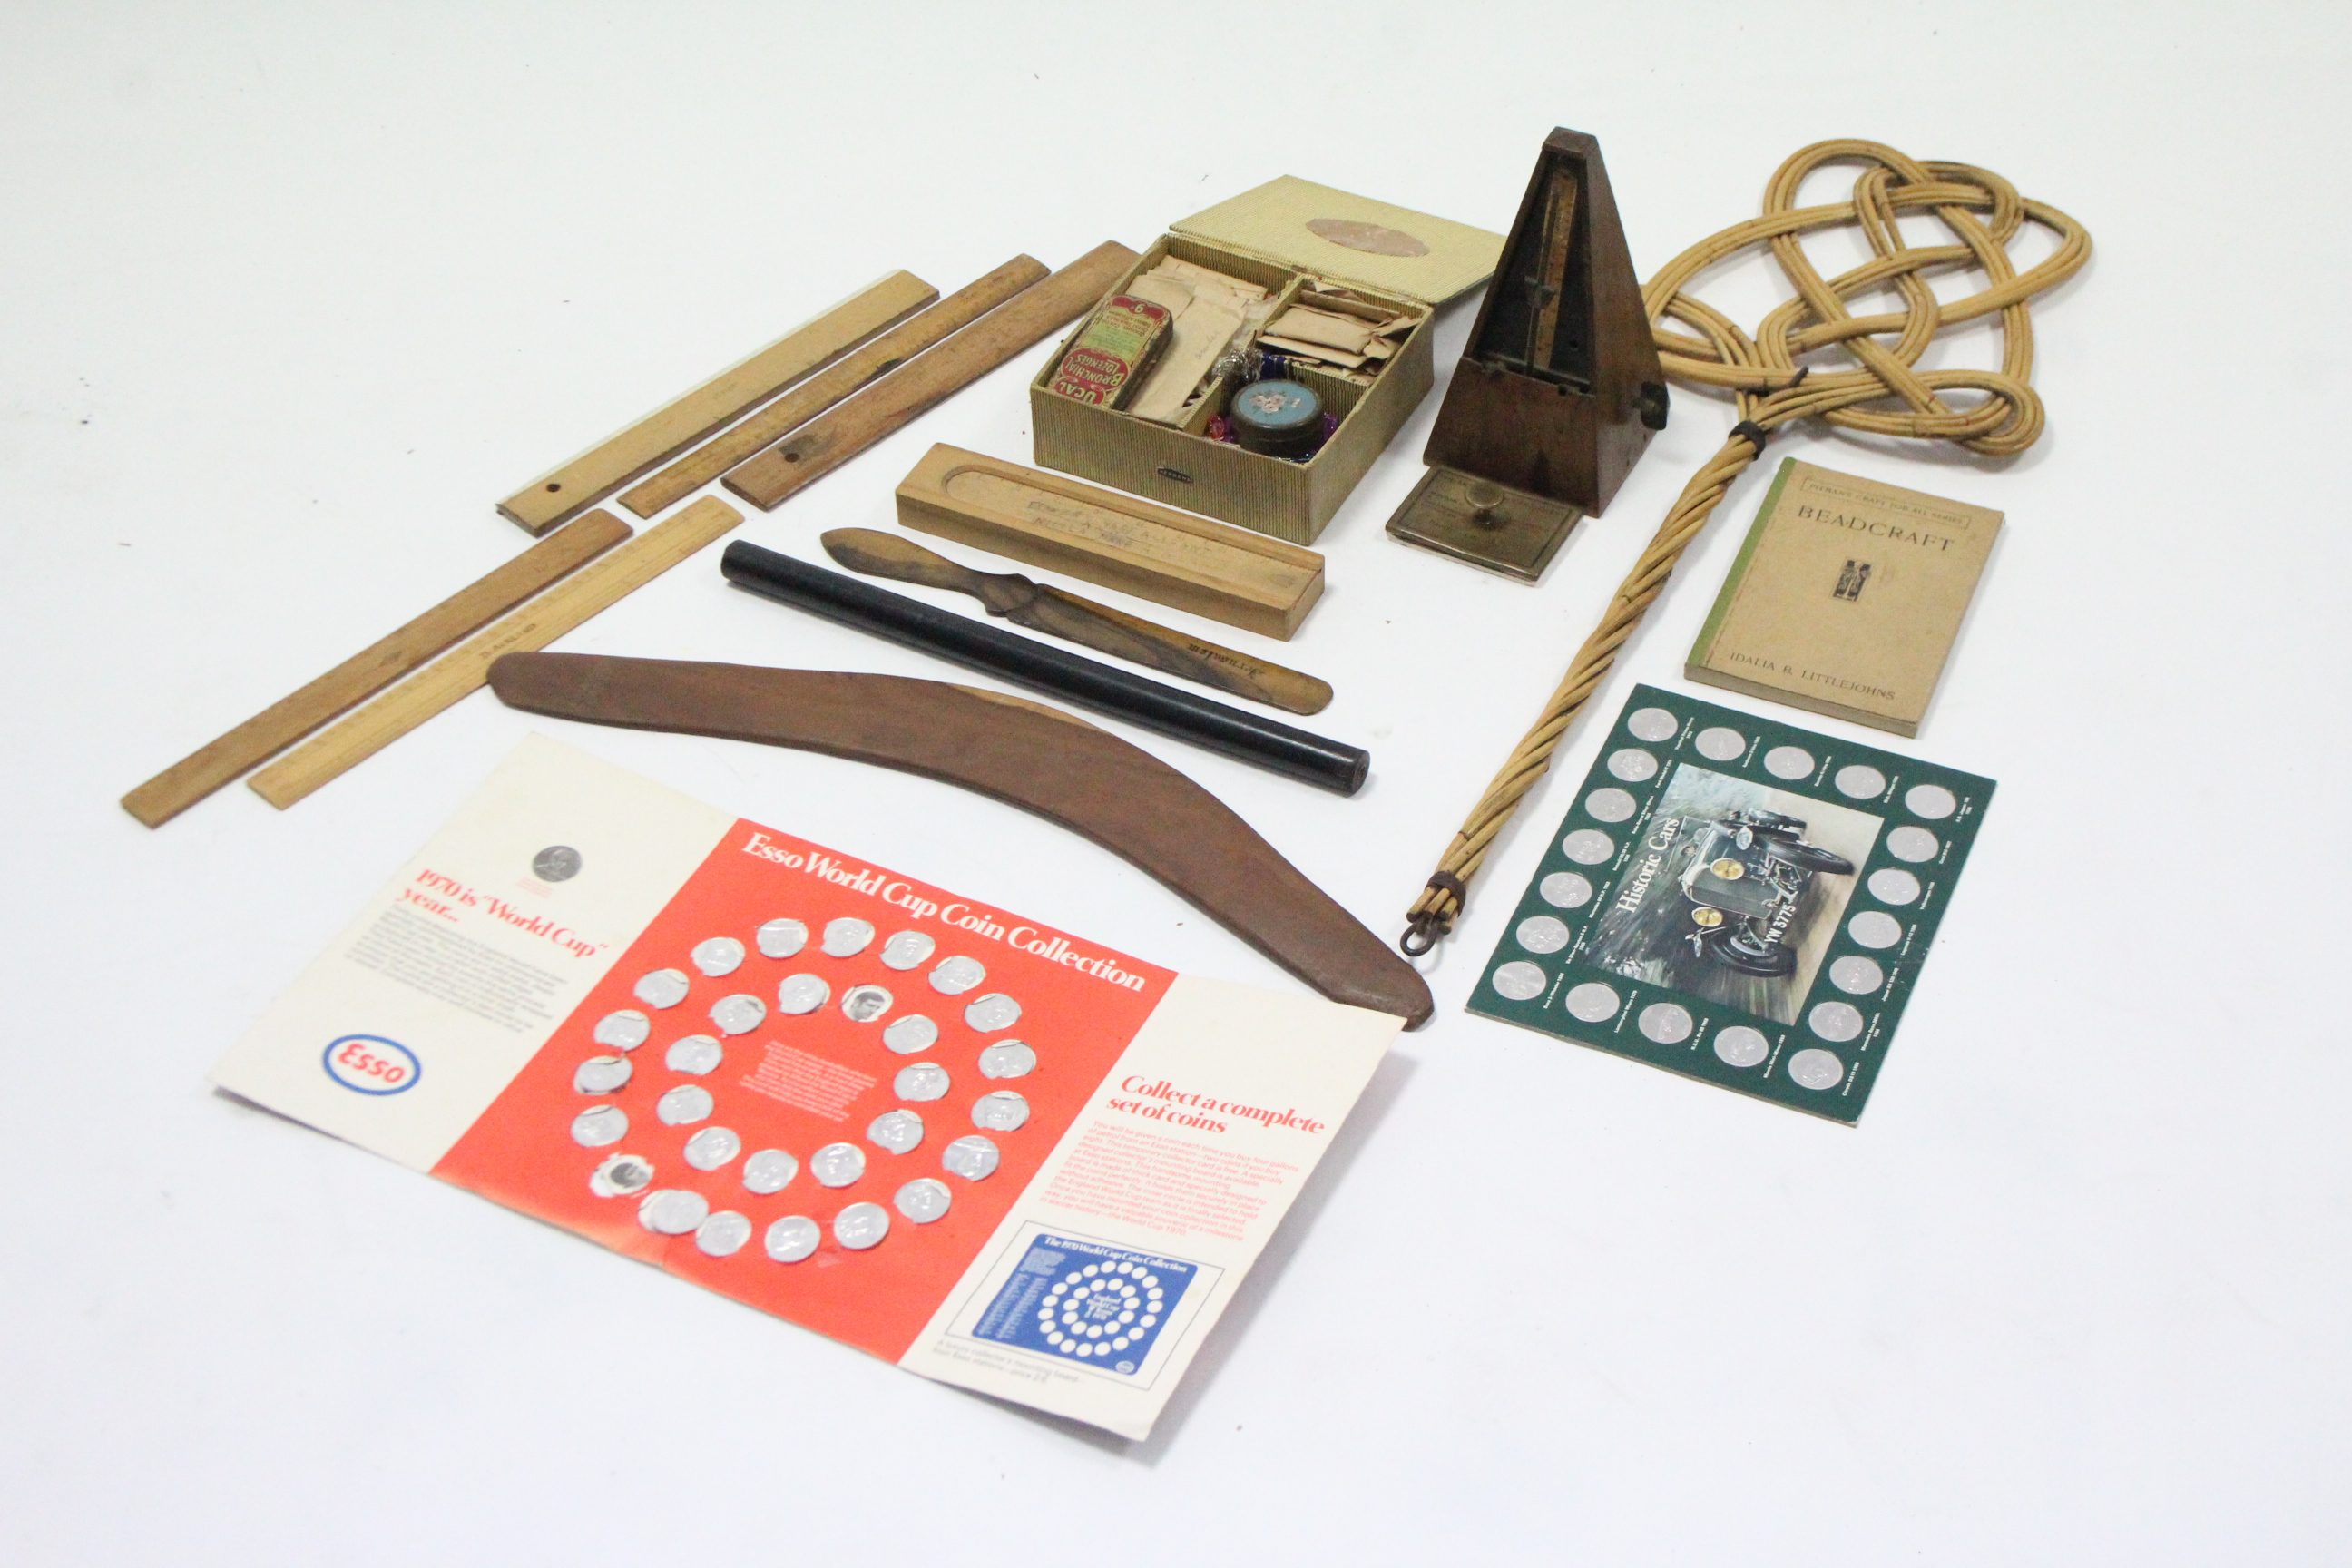 Lot 31 - A metronome (lacking front cover); a Beadcraft set; a cane carpet beater; a boomerang; & sundry